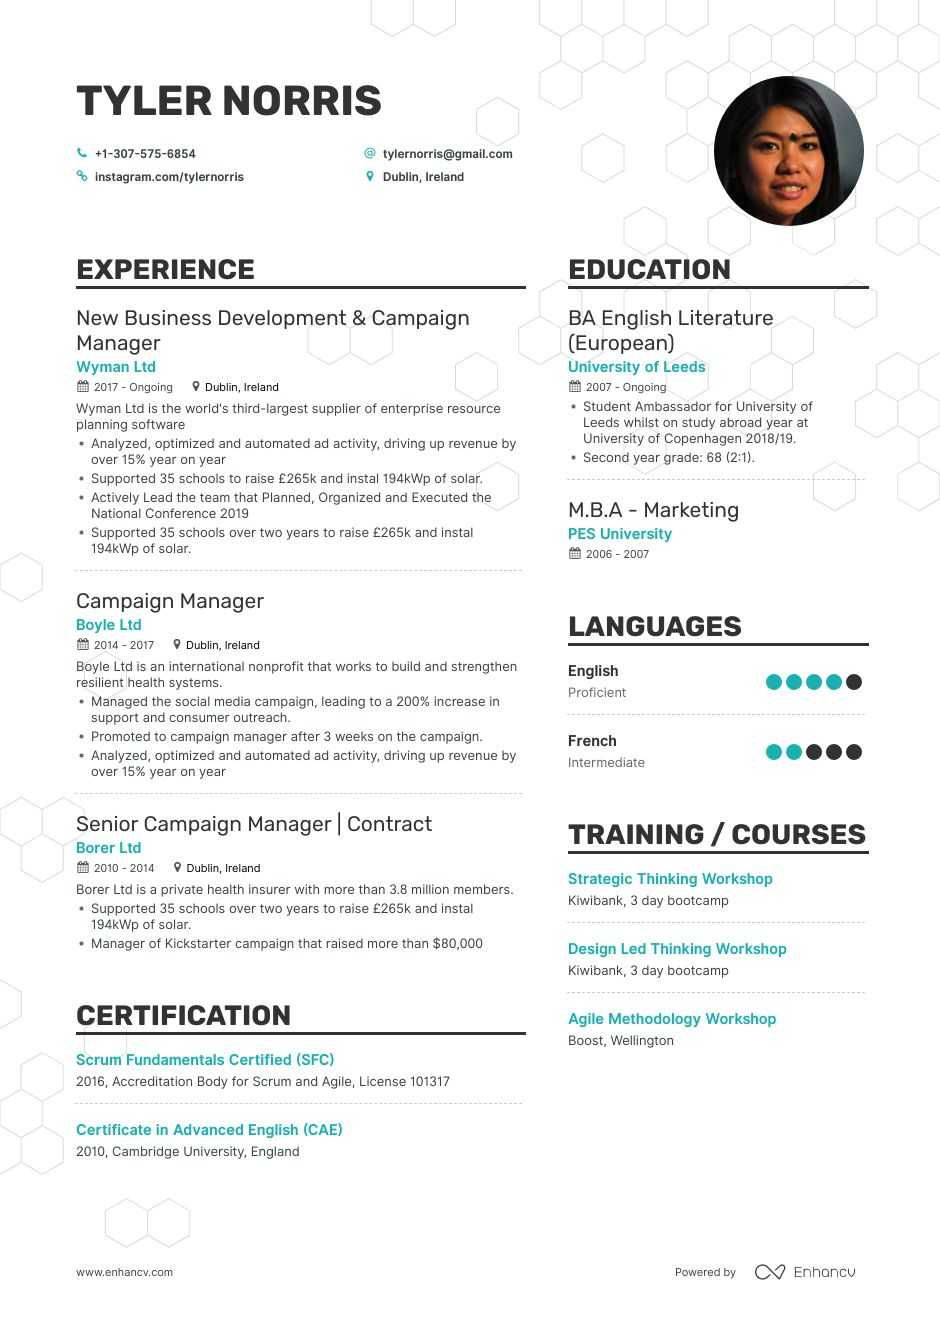 500 Free Professional Resume Examples And Samples For 2020